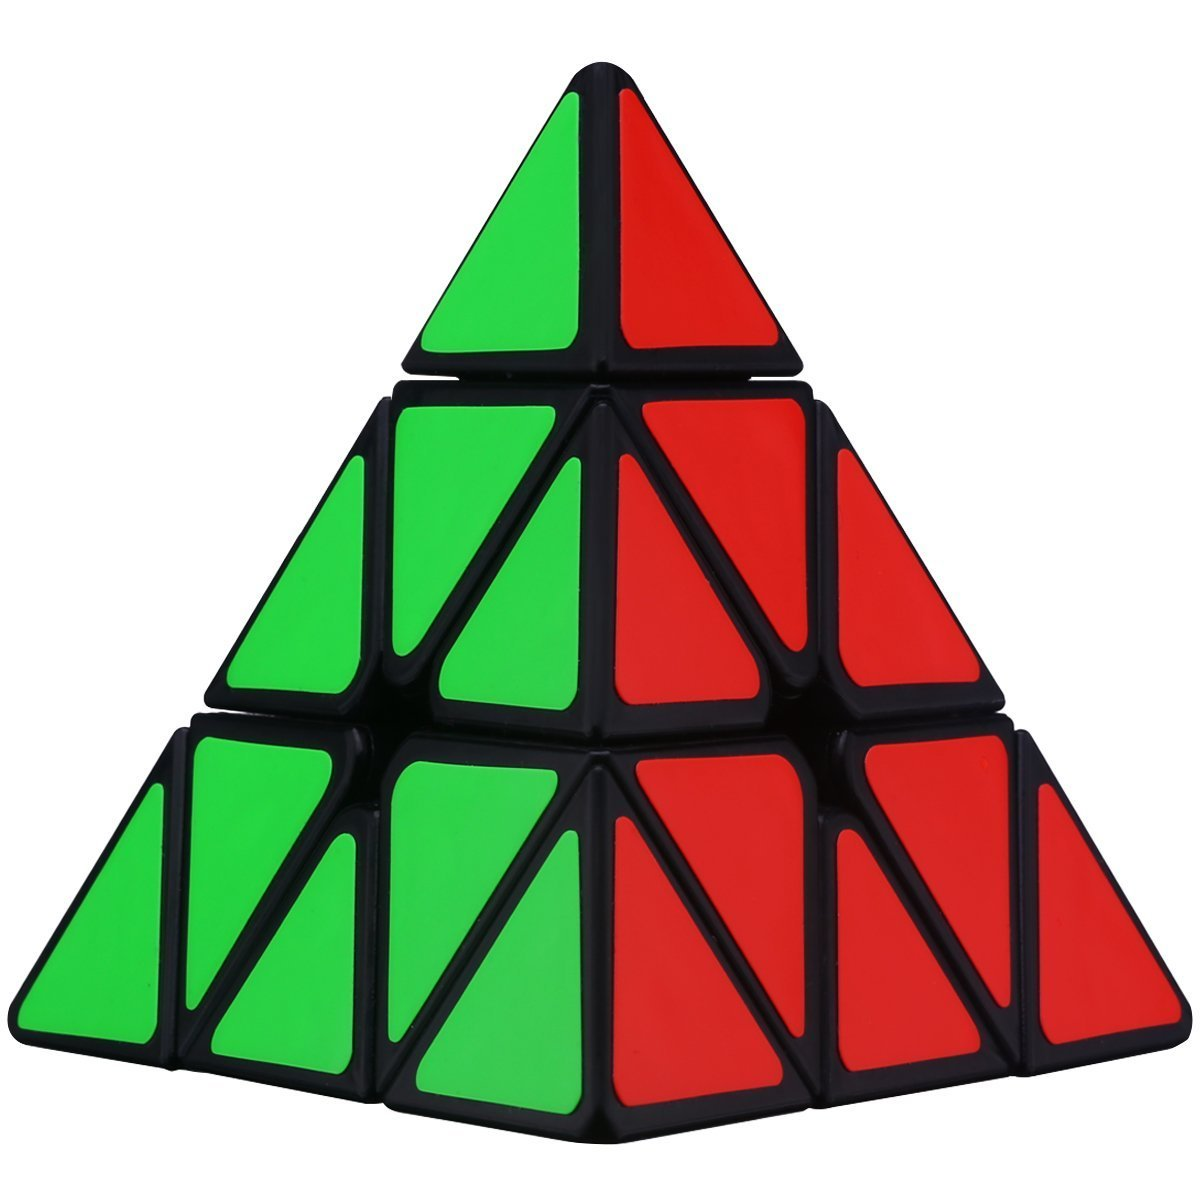 similar to rubix cubes